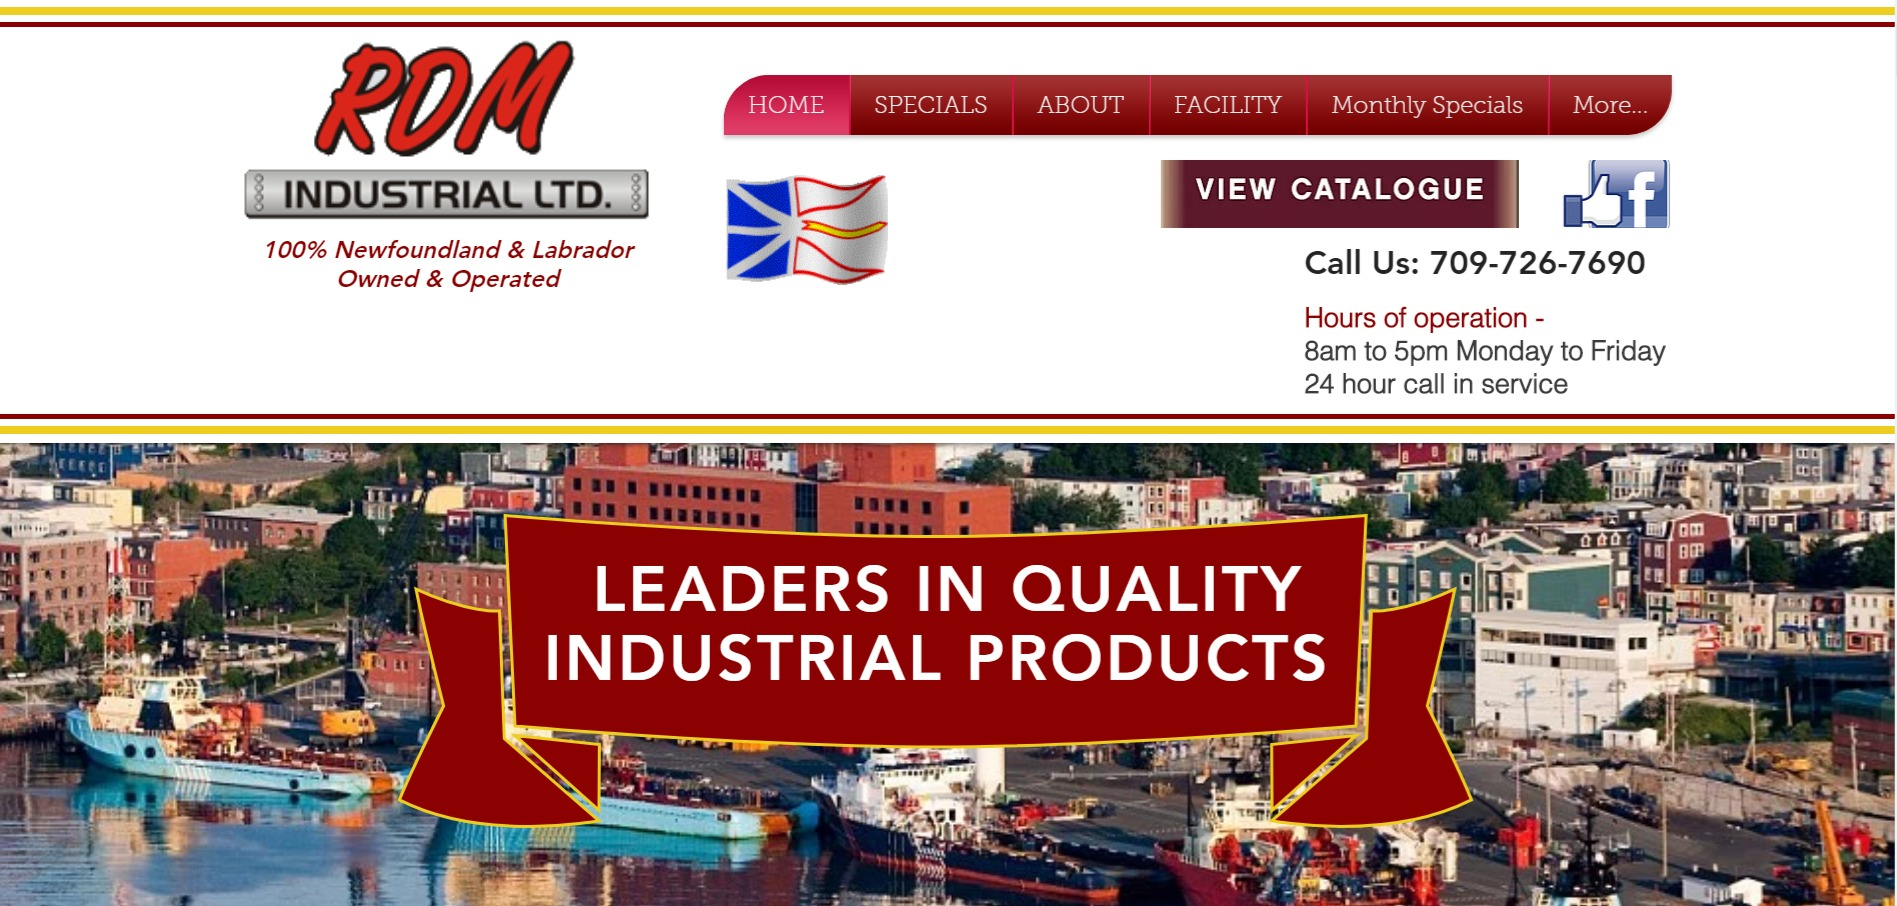 RDM Industrial LTD.